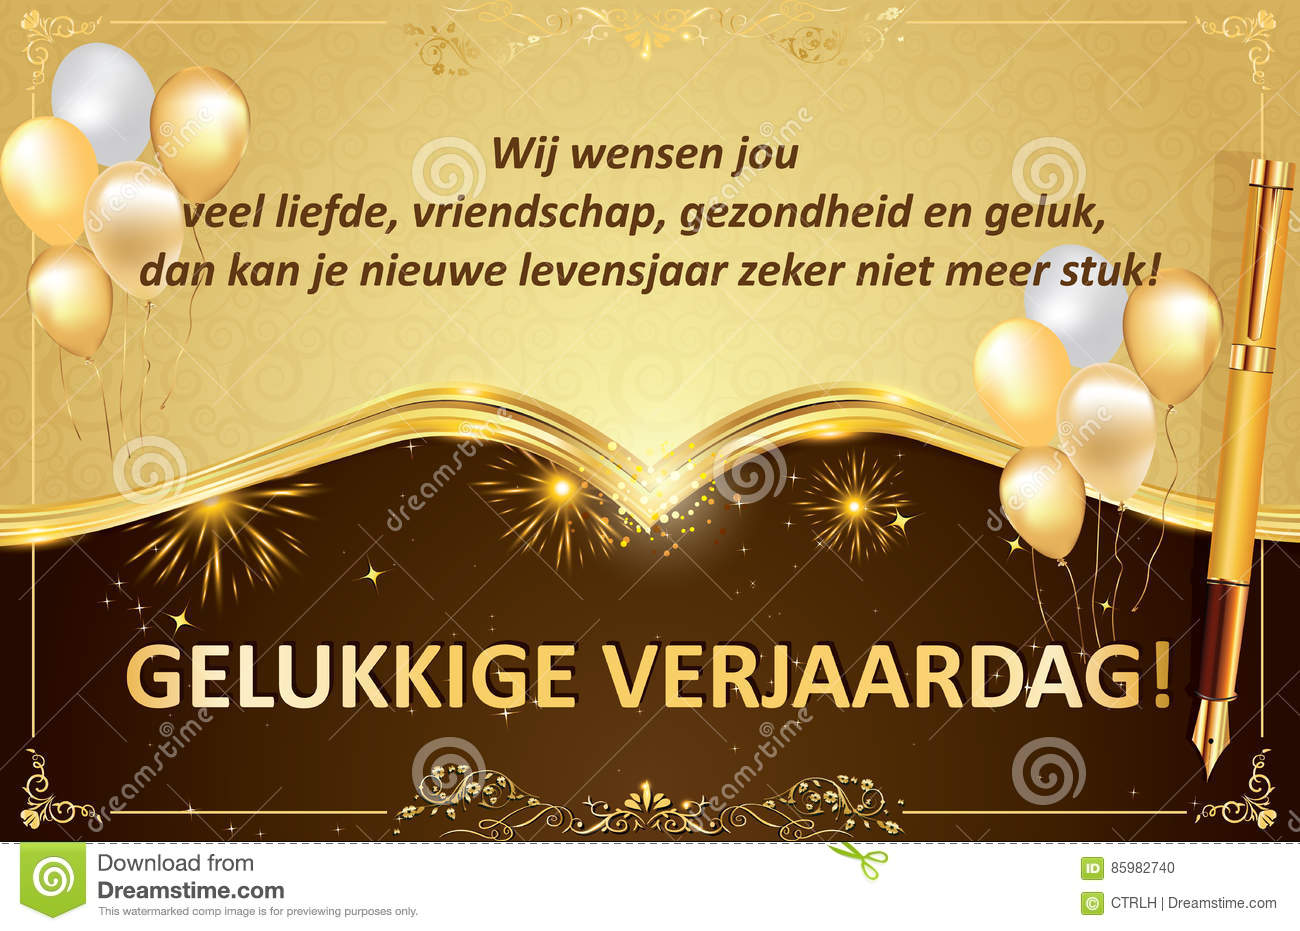 Dutch Birthday Greeting Card For Friends Colleagues And Boss We Wish You Love Friendship Health Luck In The Year That Comes Happy